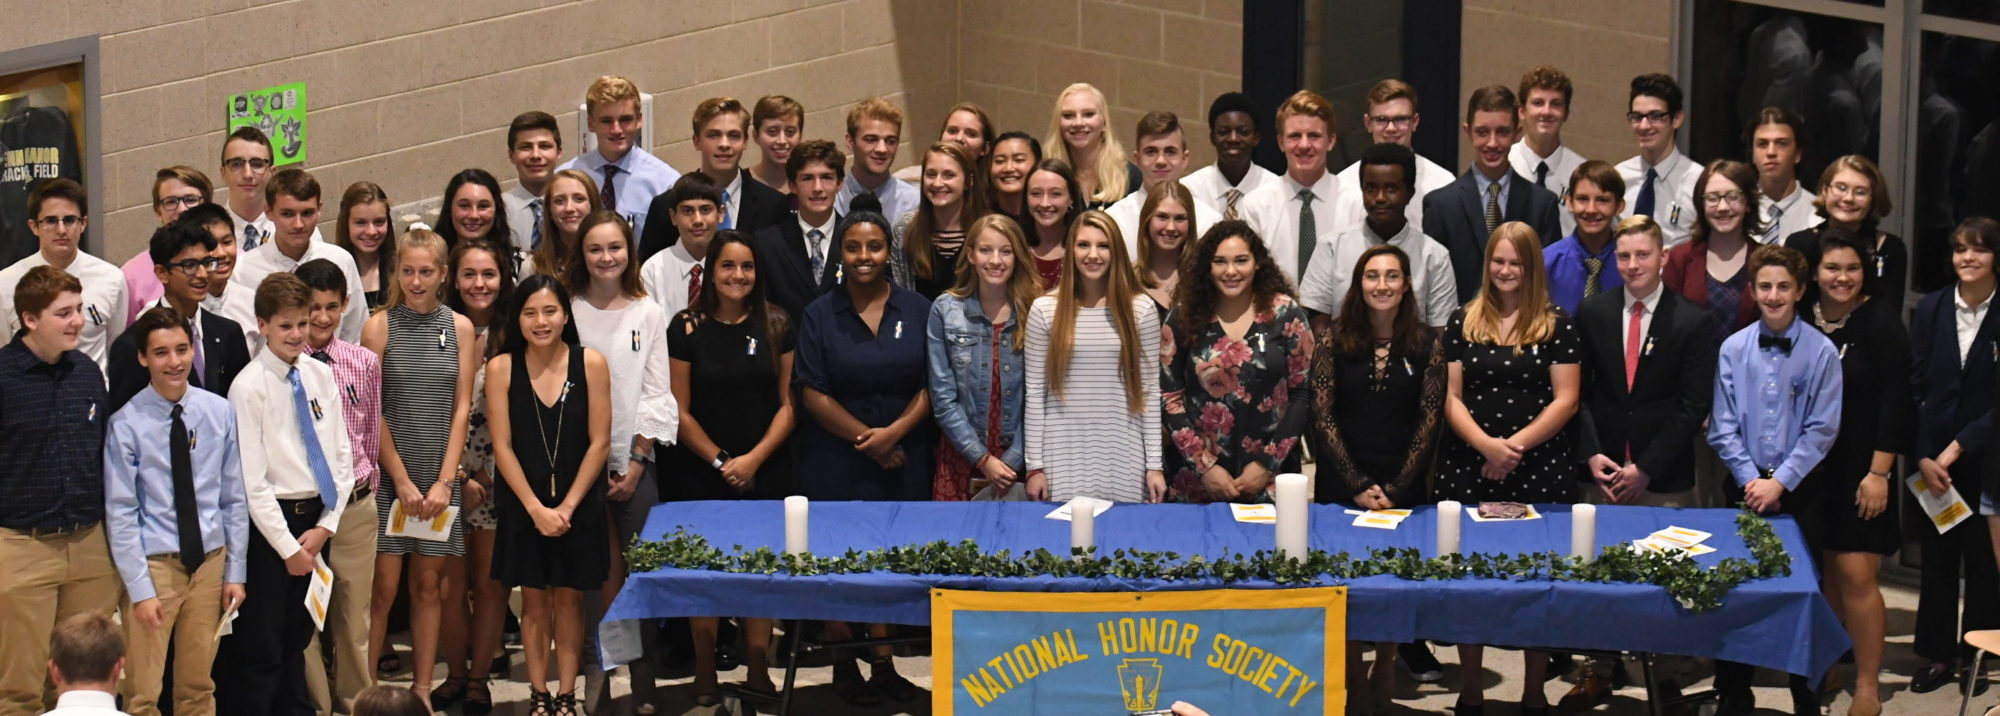 Penn Manor National Honor Society